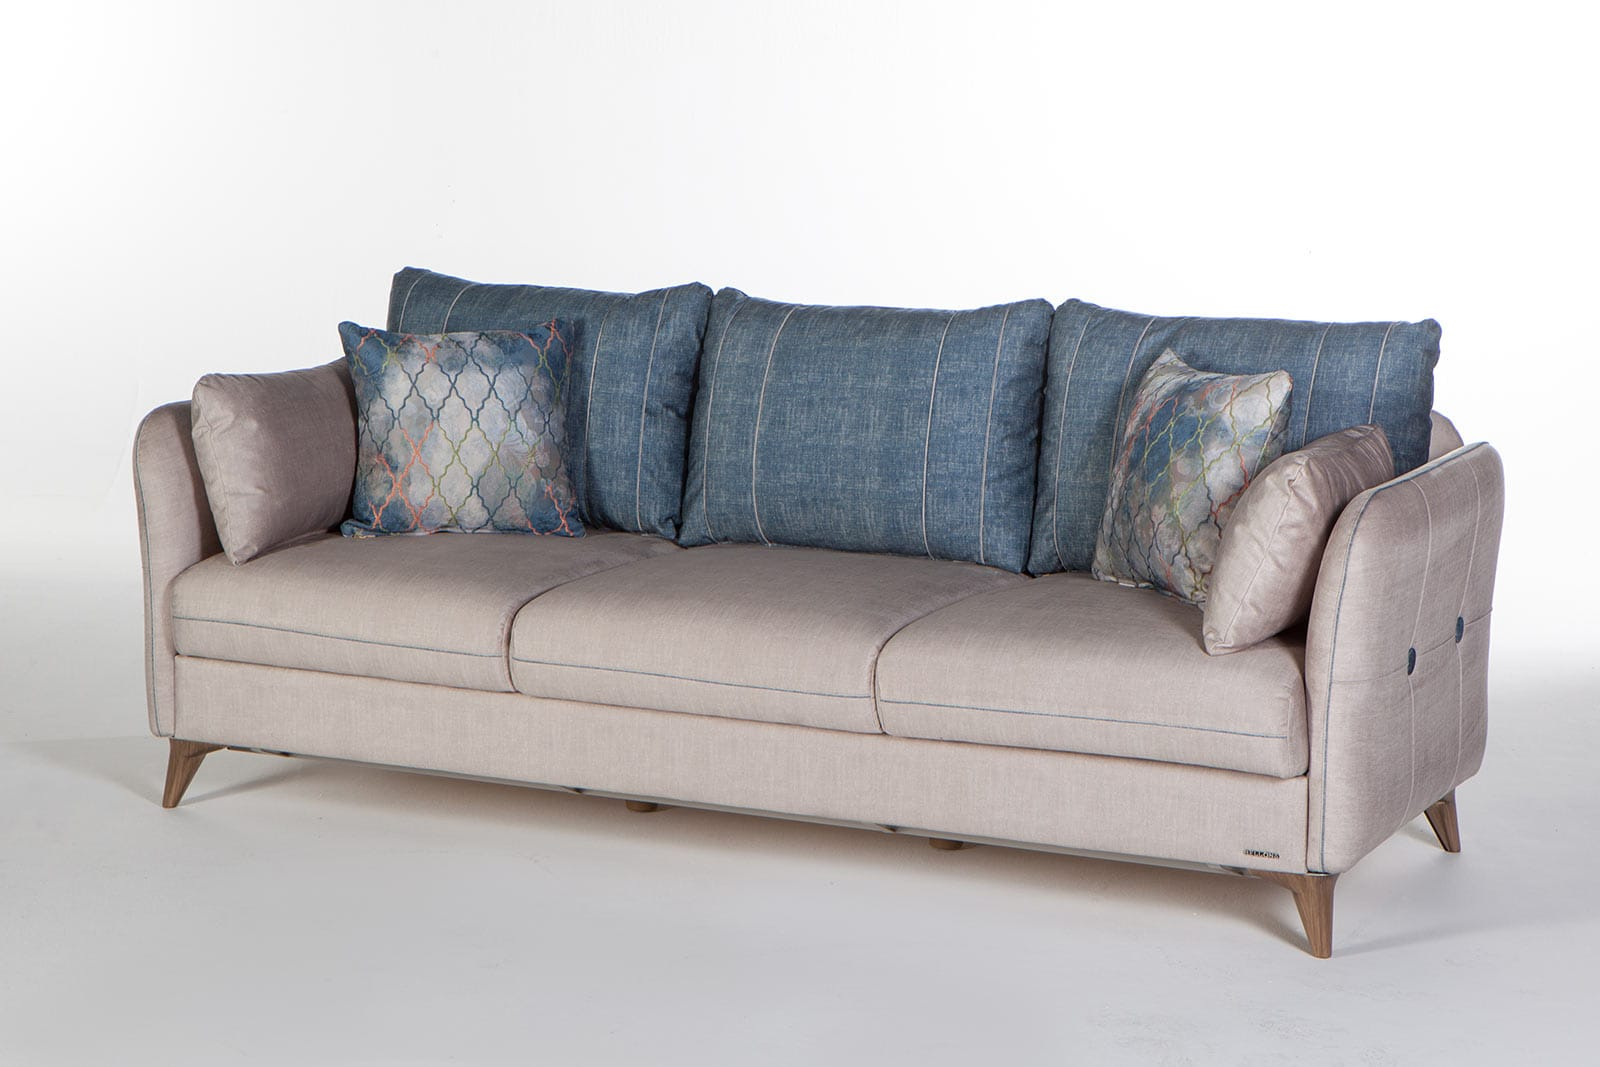 Elit Light Gray Convertible Sofa Bed by Istikbal Furniture